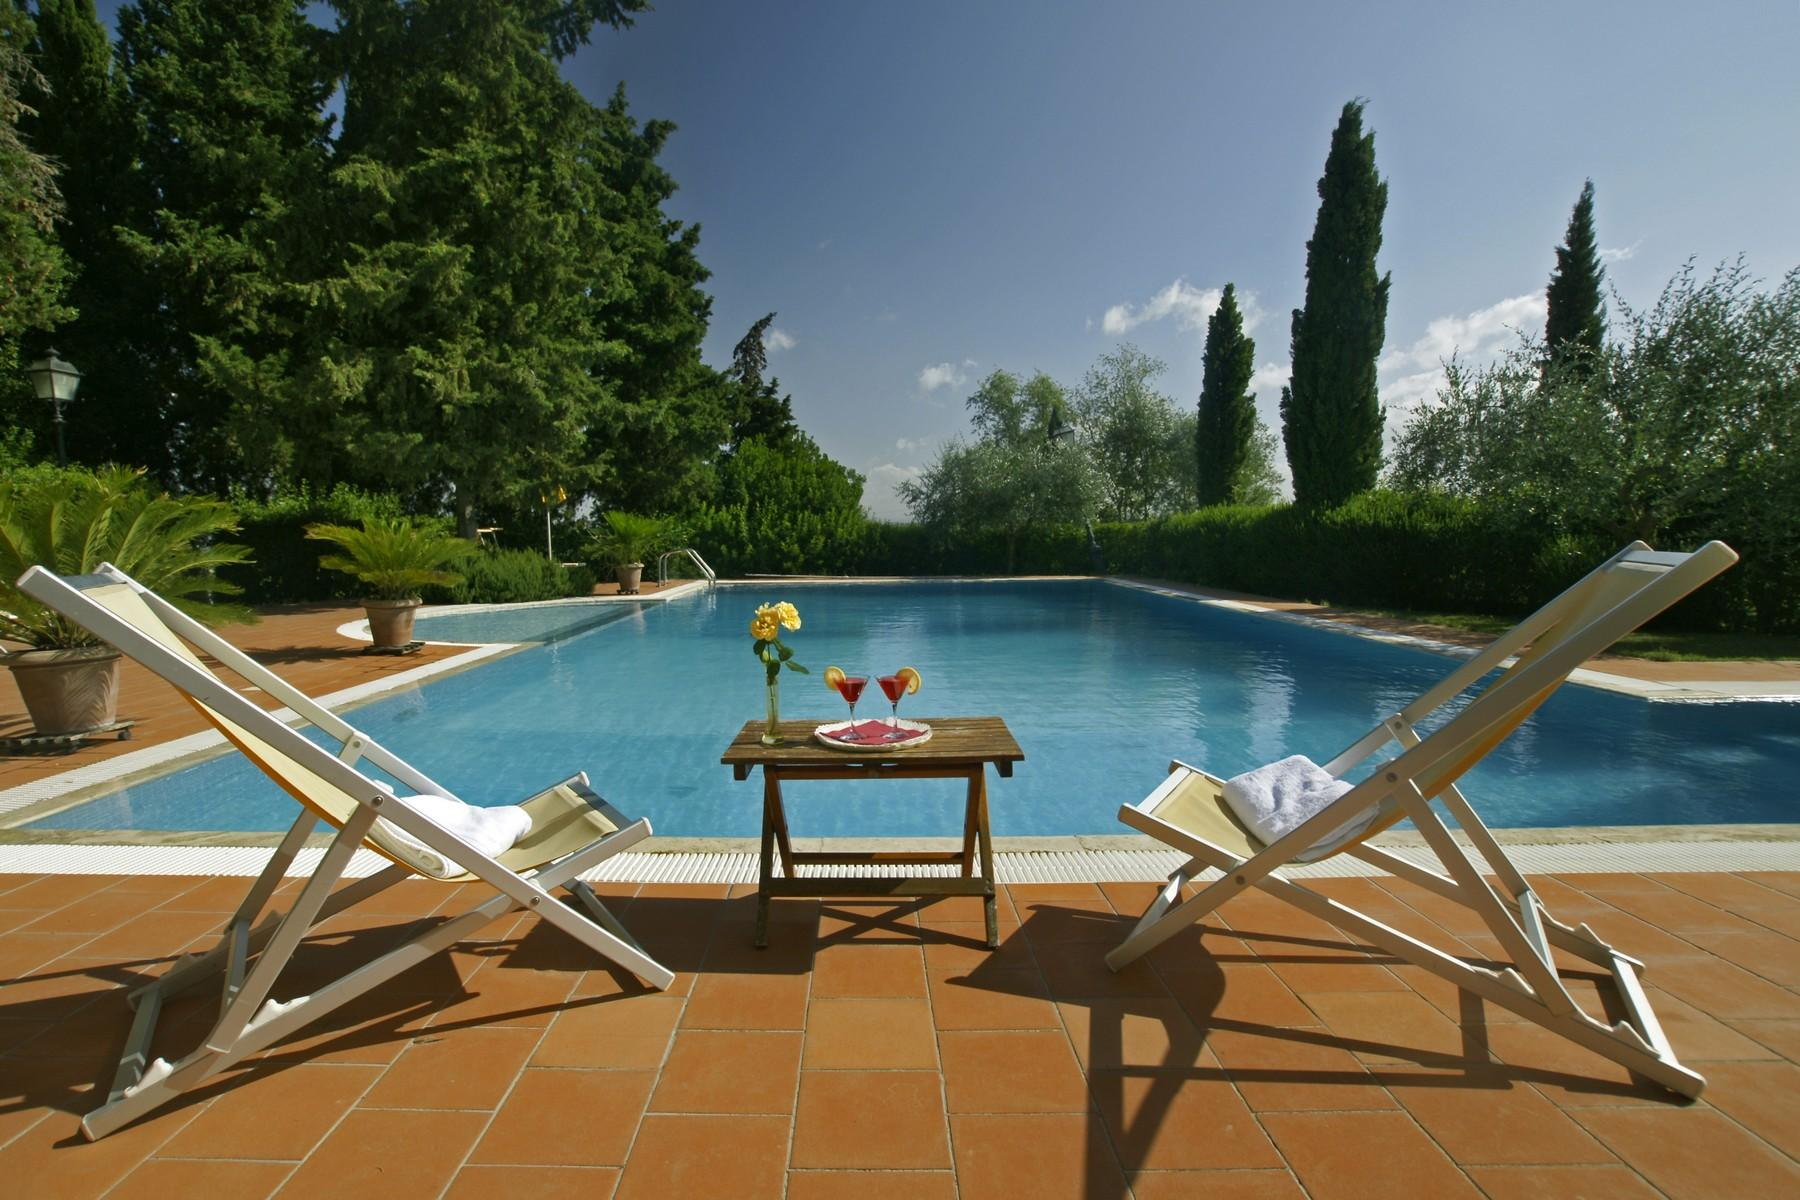 Charming holiday resort in the heart of Tuscany - 12